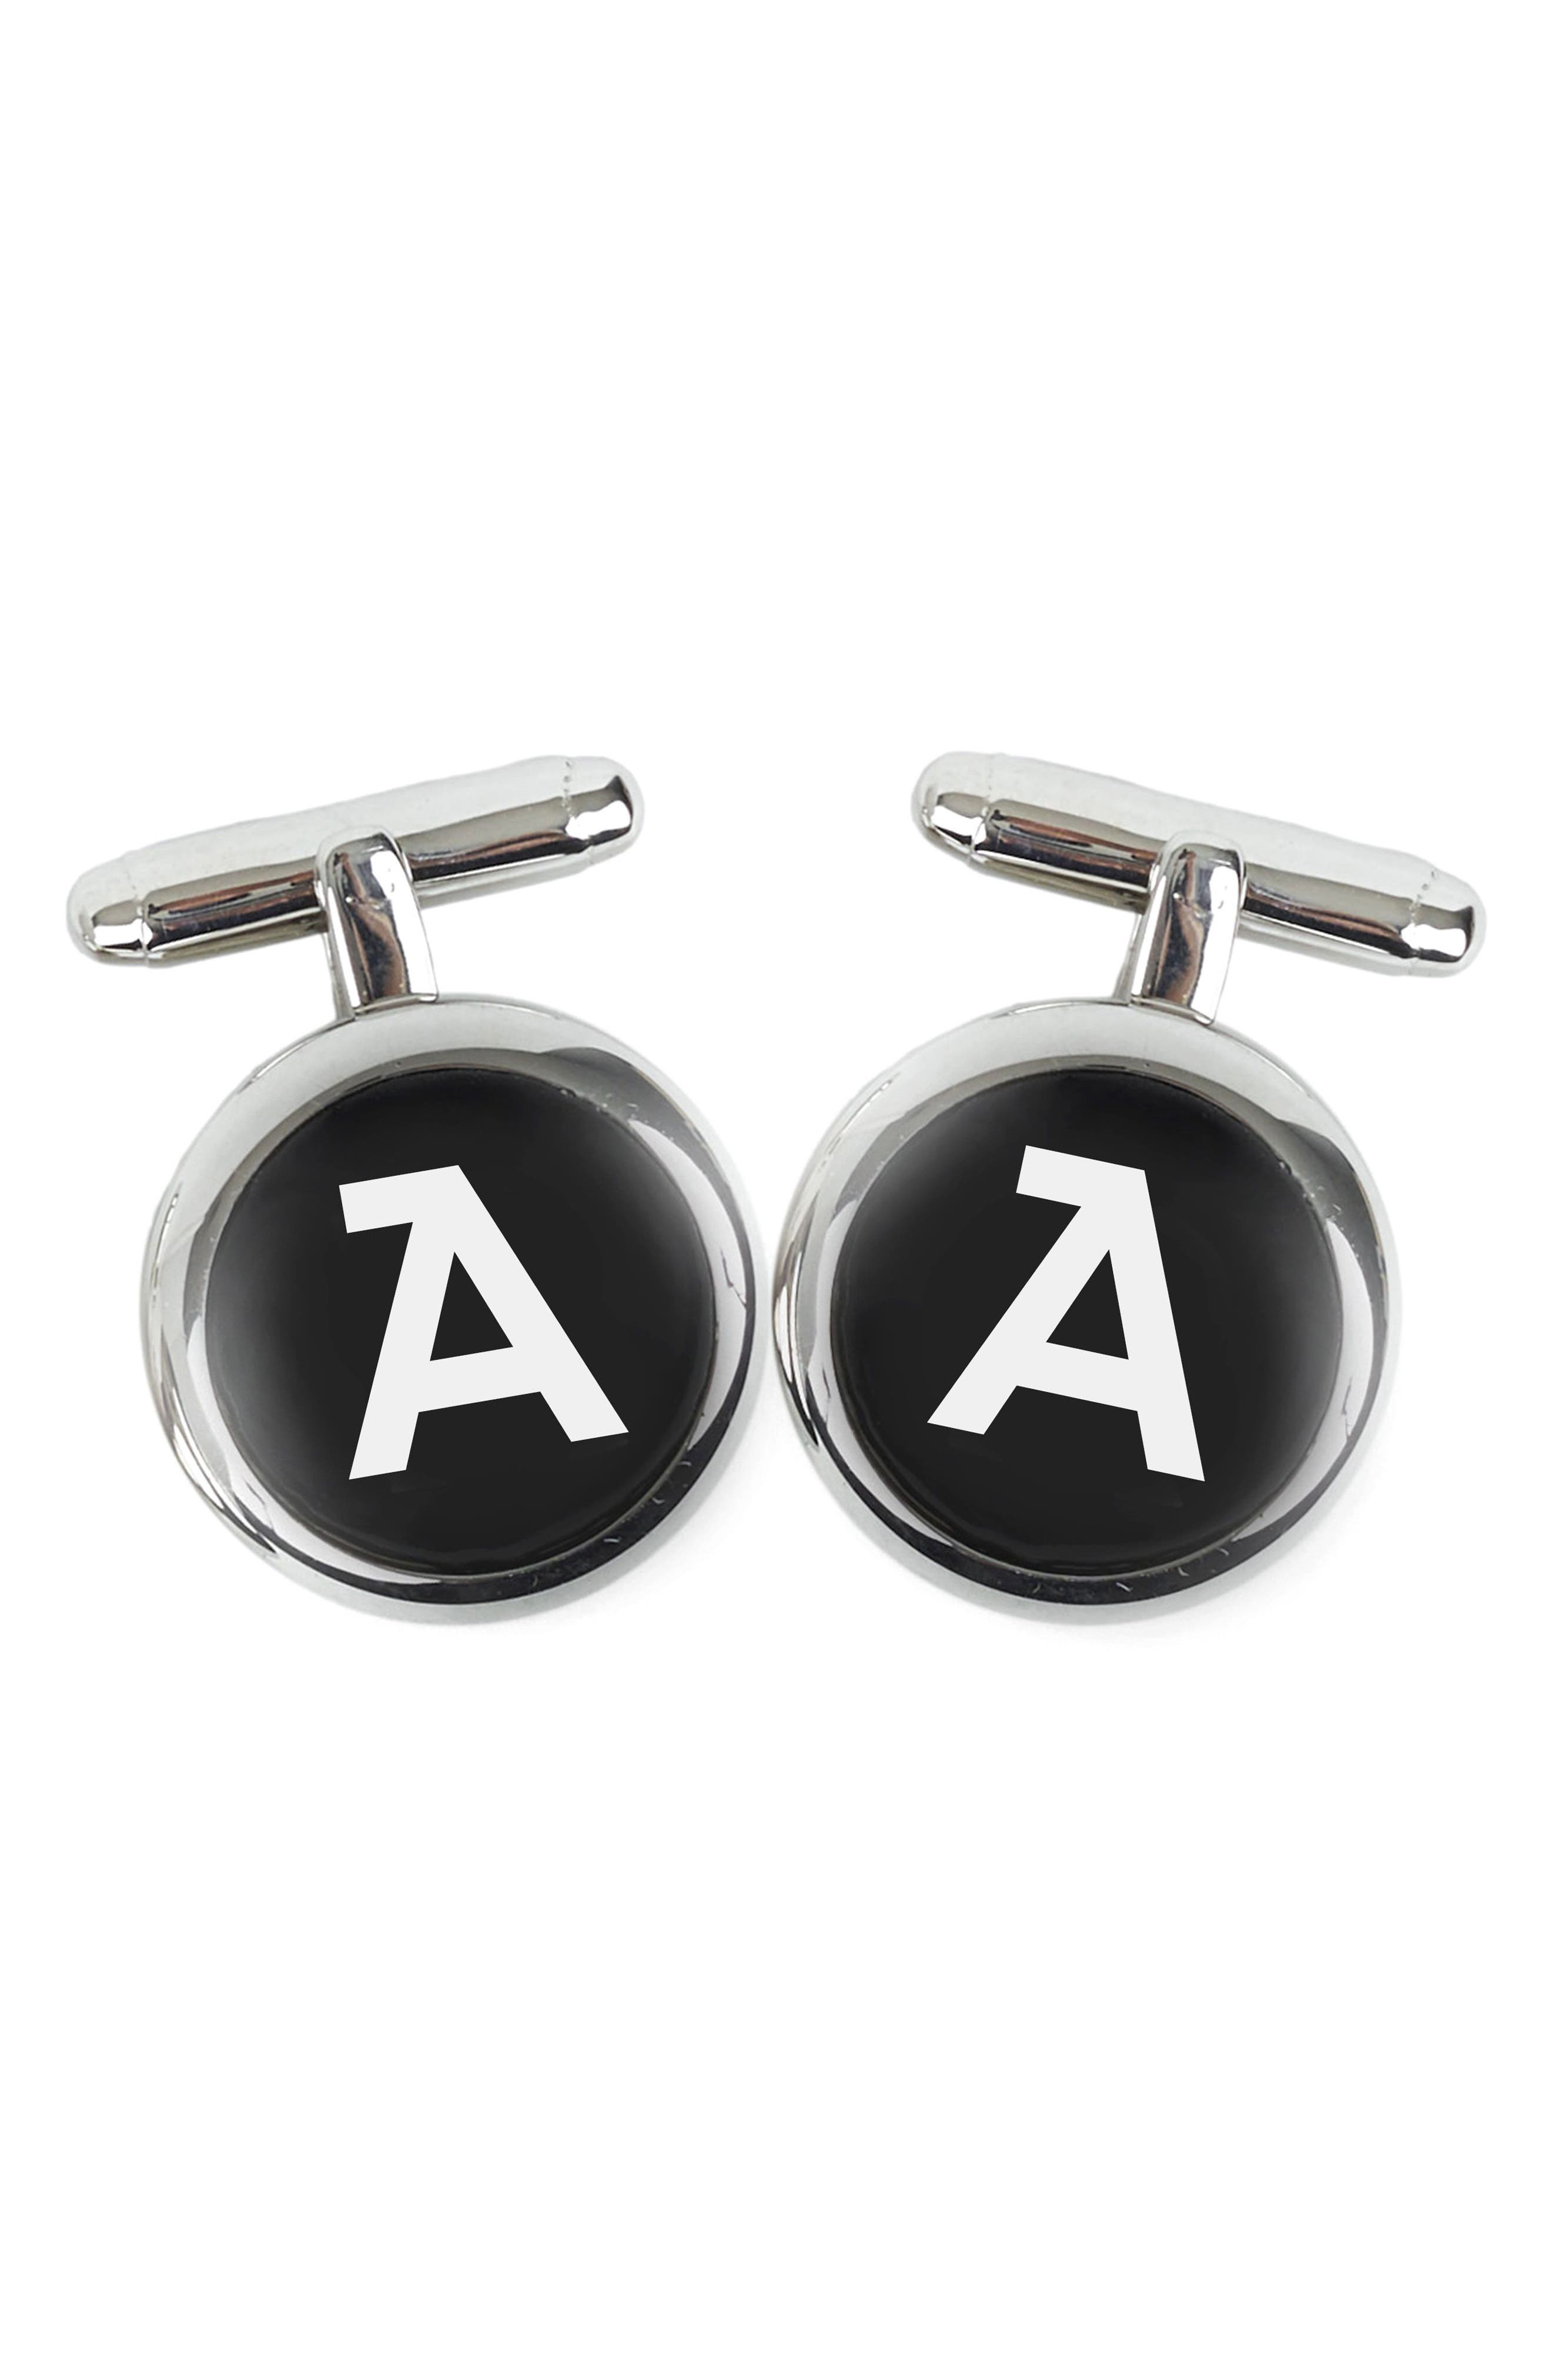 Brooklyn Silver Monogram Cuff Links,                             Main thumbnail 1, color,                             A